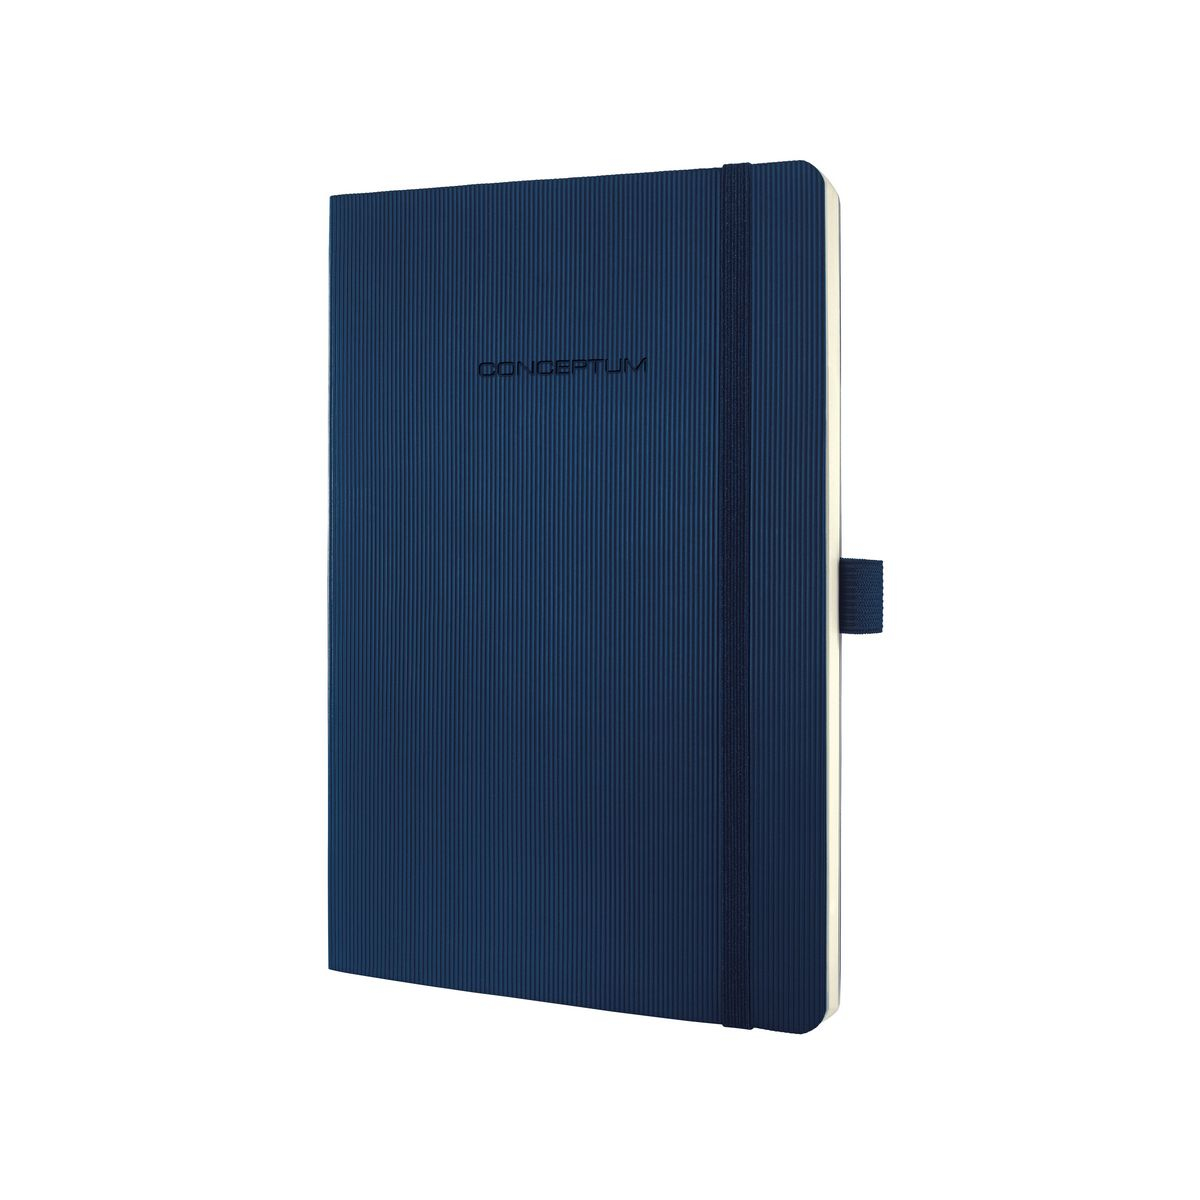 sigel Sigel Conceptum Notebook Softcover Lined 135x210x14mm Blue Co327 - AD01